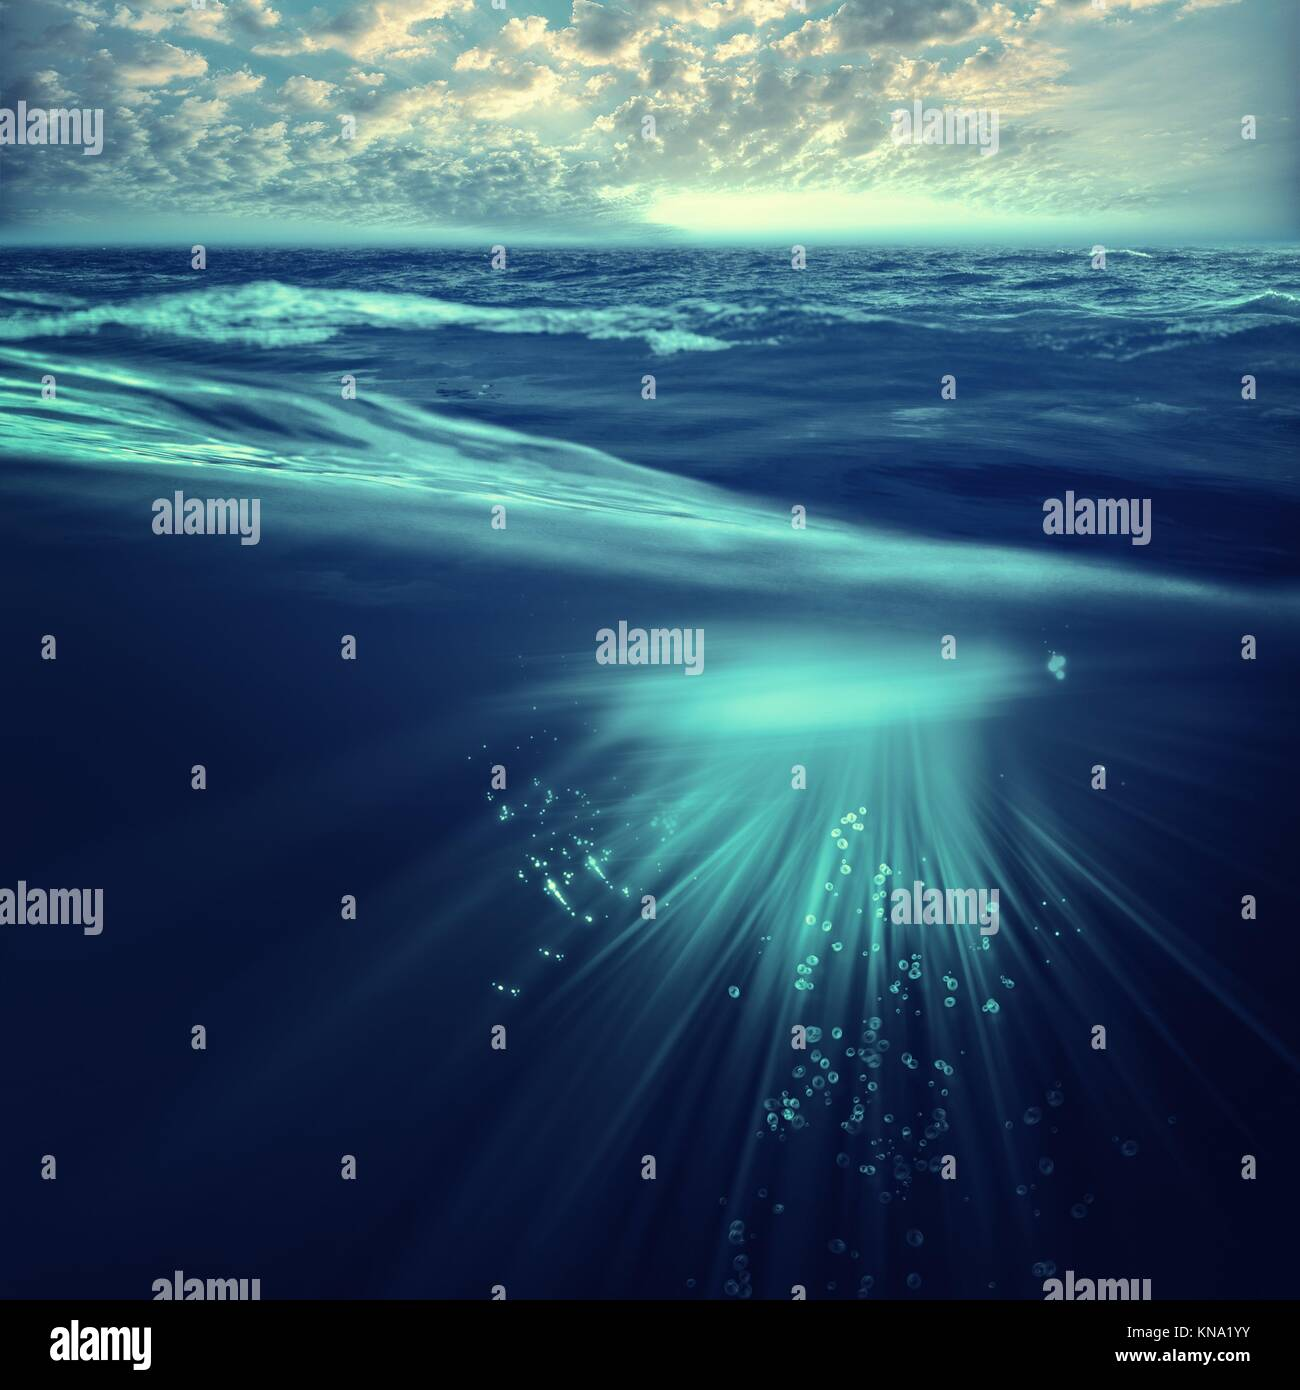 Deep ocean, marine backgrounds with waves and sea surface. - Stock Image